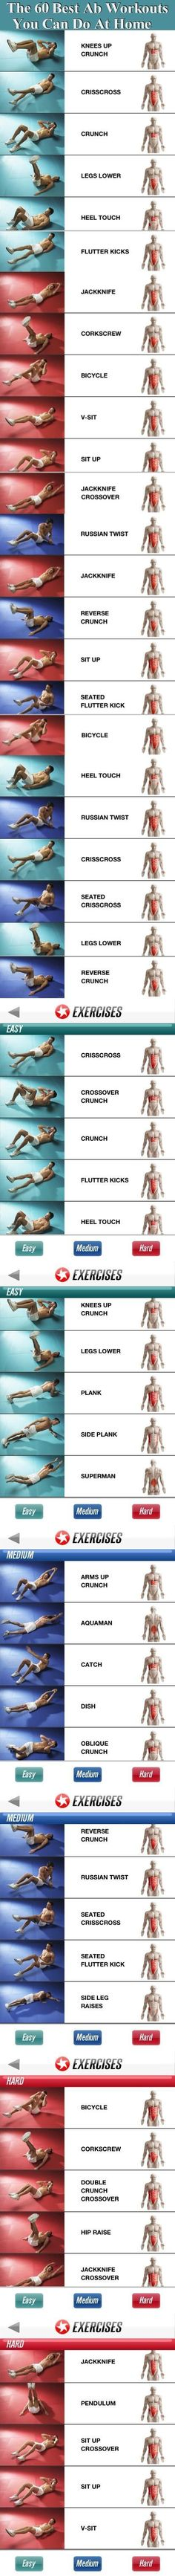 @lindalinduh lower back pain exercises